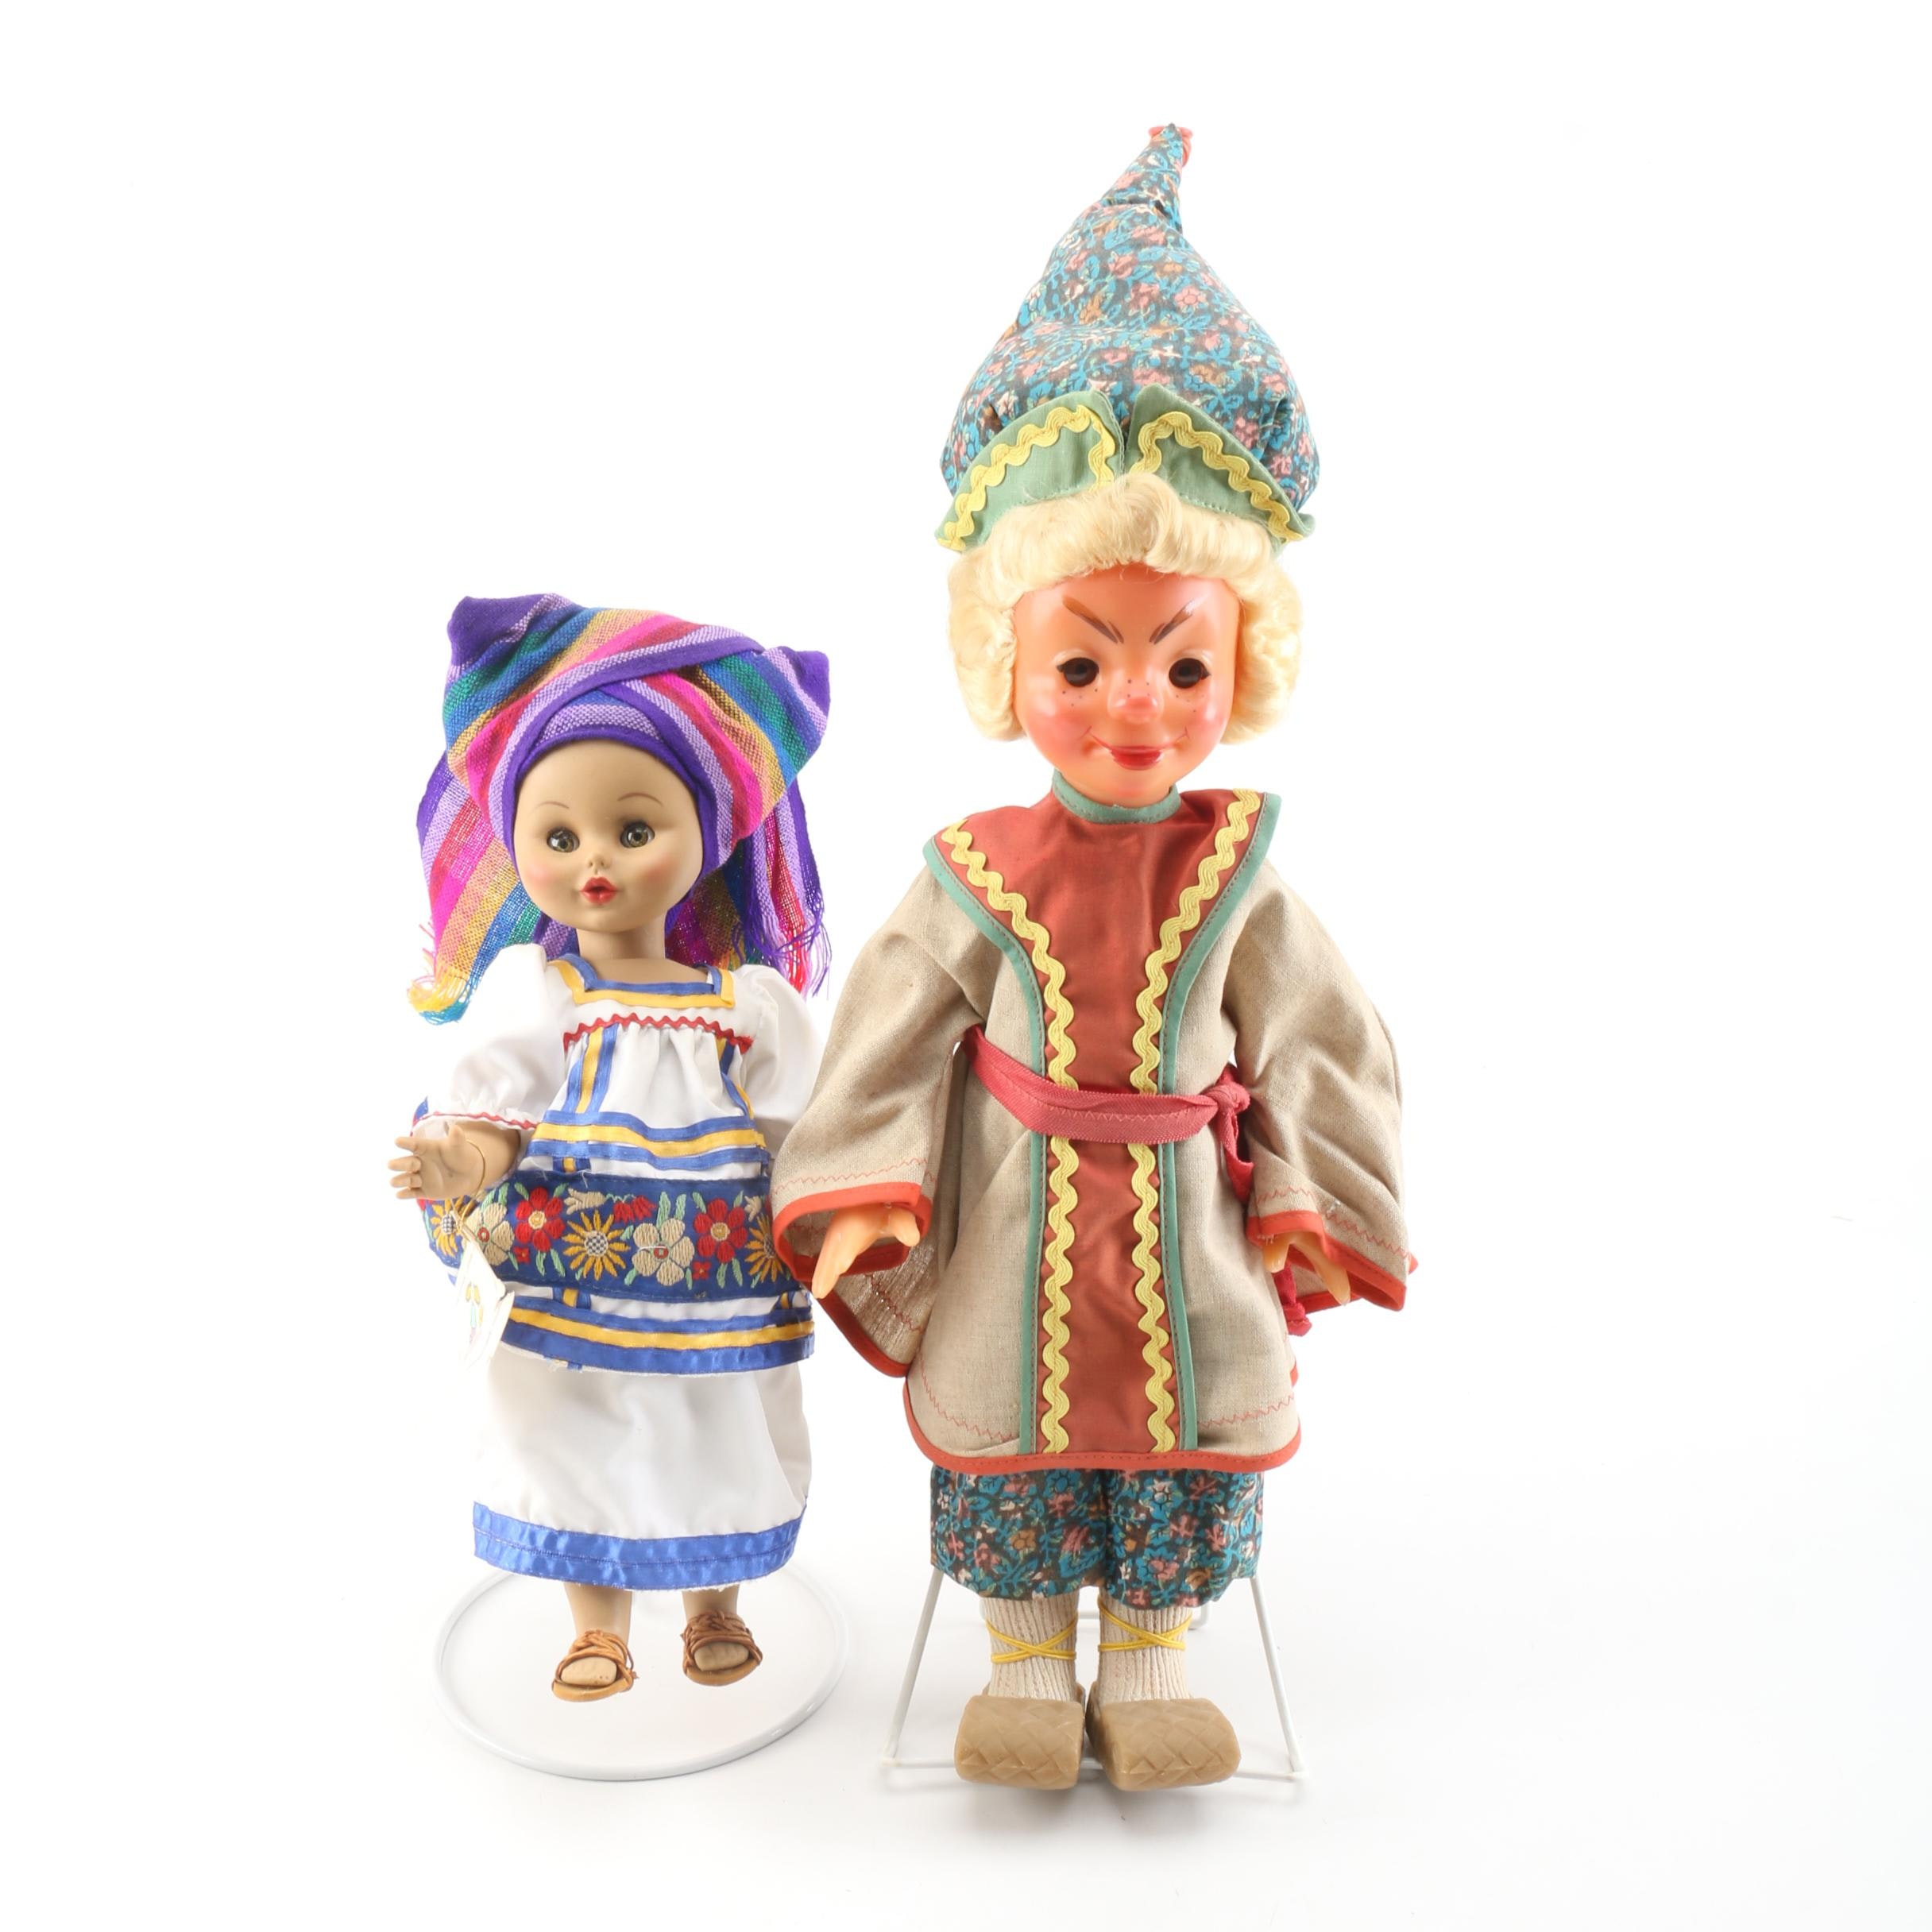 1990s Muñecas Eny Mexican Doll and Vintage Souvenir Doll